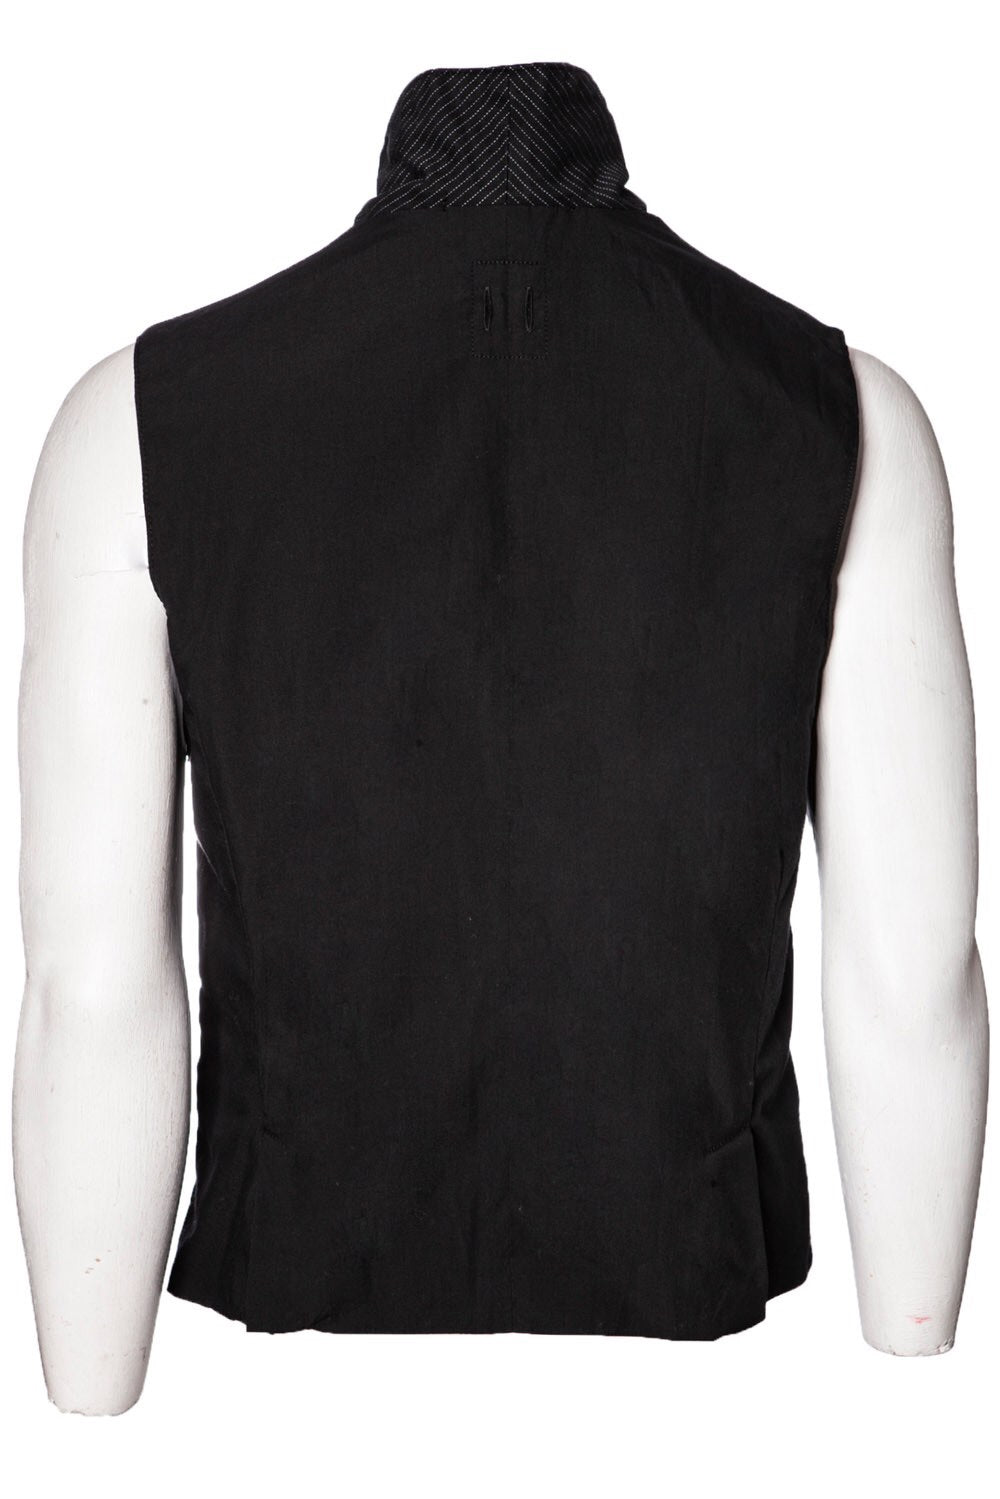 Hannes Roether Pinstripe Vest